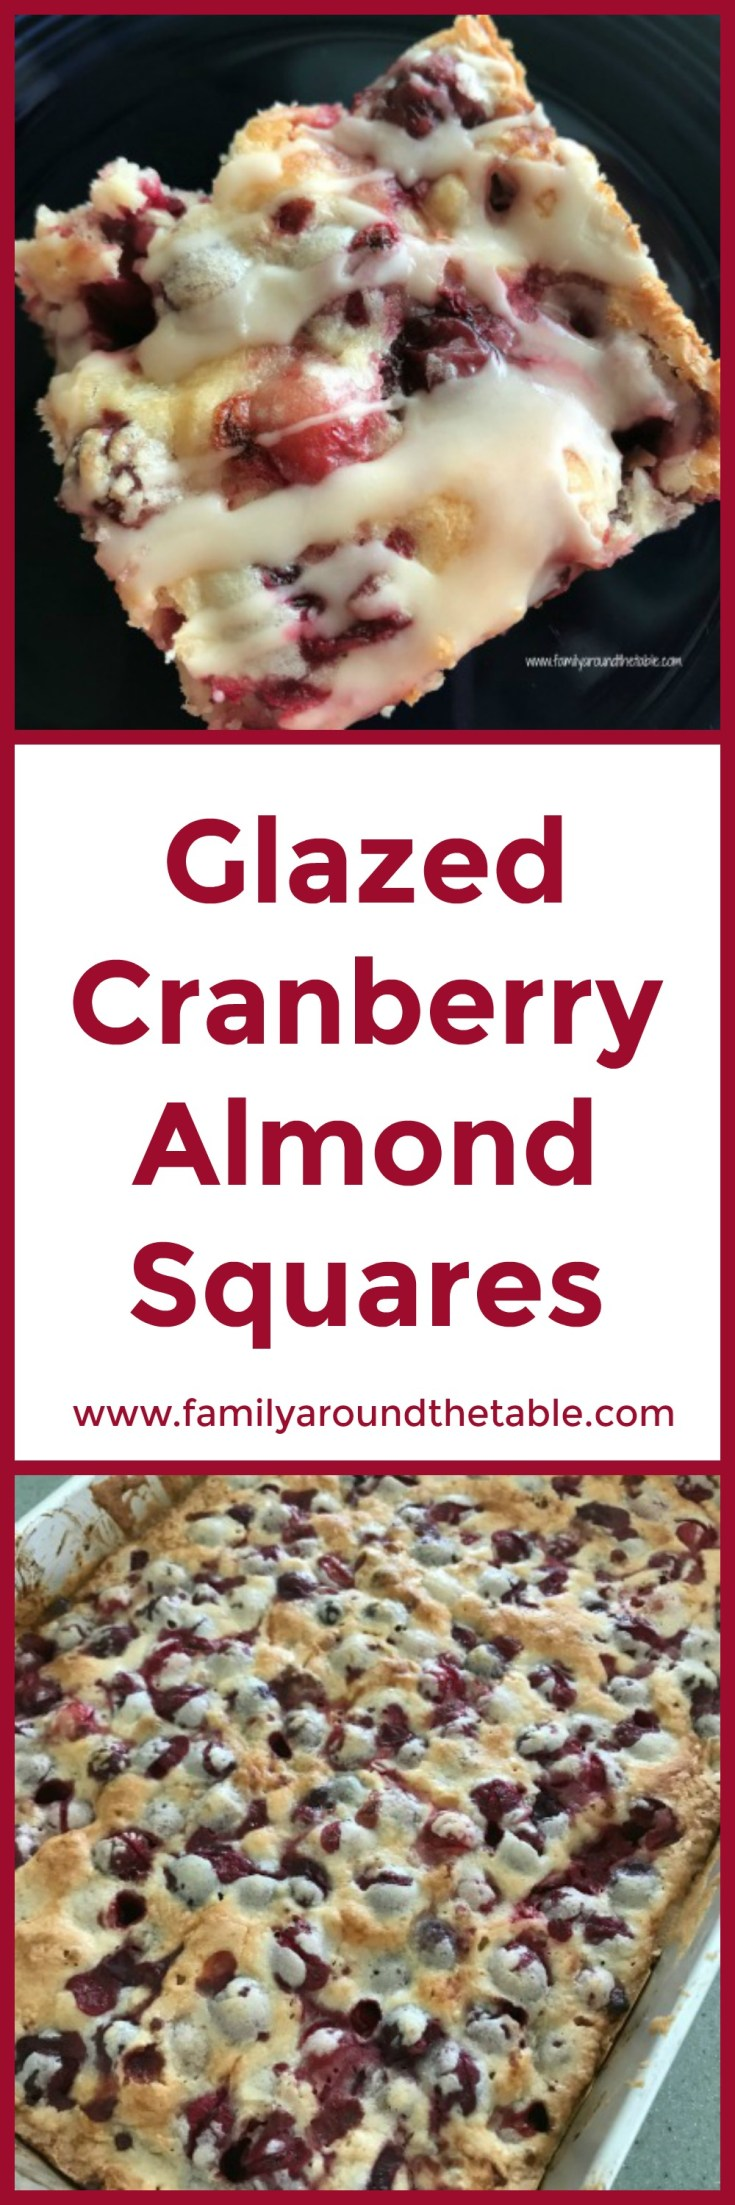 Glazed cranberry almond squares will disappear quickly. Perfect for a holiday dessert buffet.